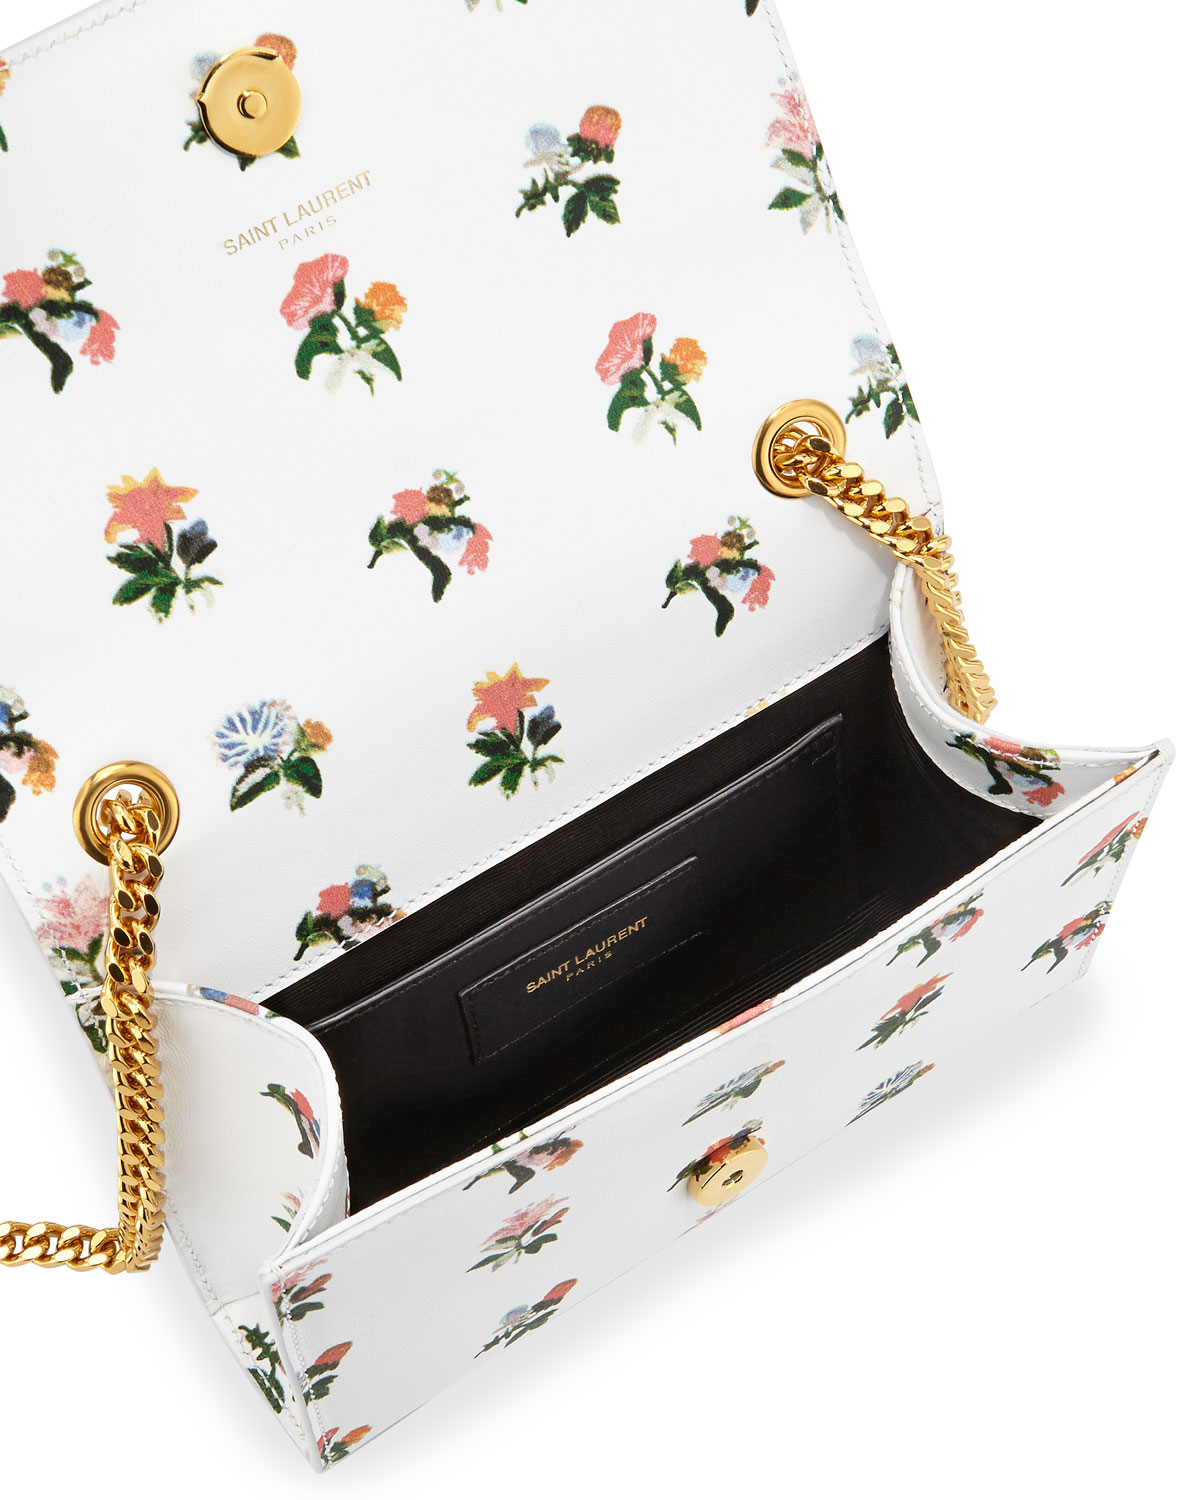 Classic Nano Sac De Jour Bag In Black And Multicolor Prairie Flower Printed Leather